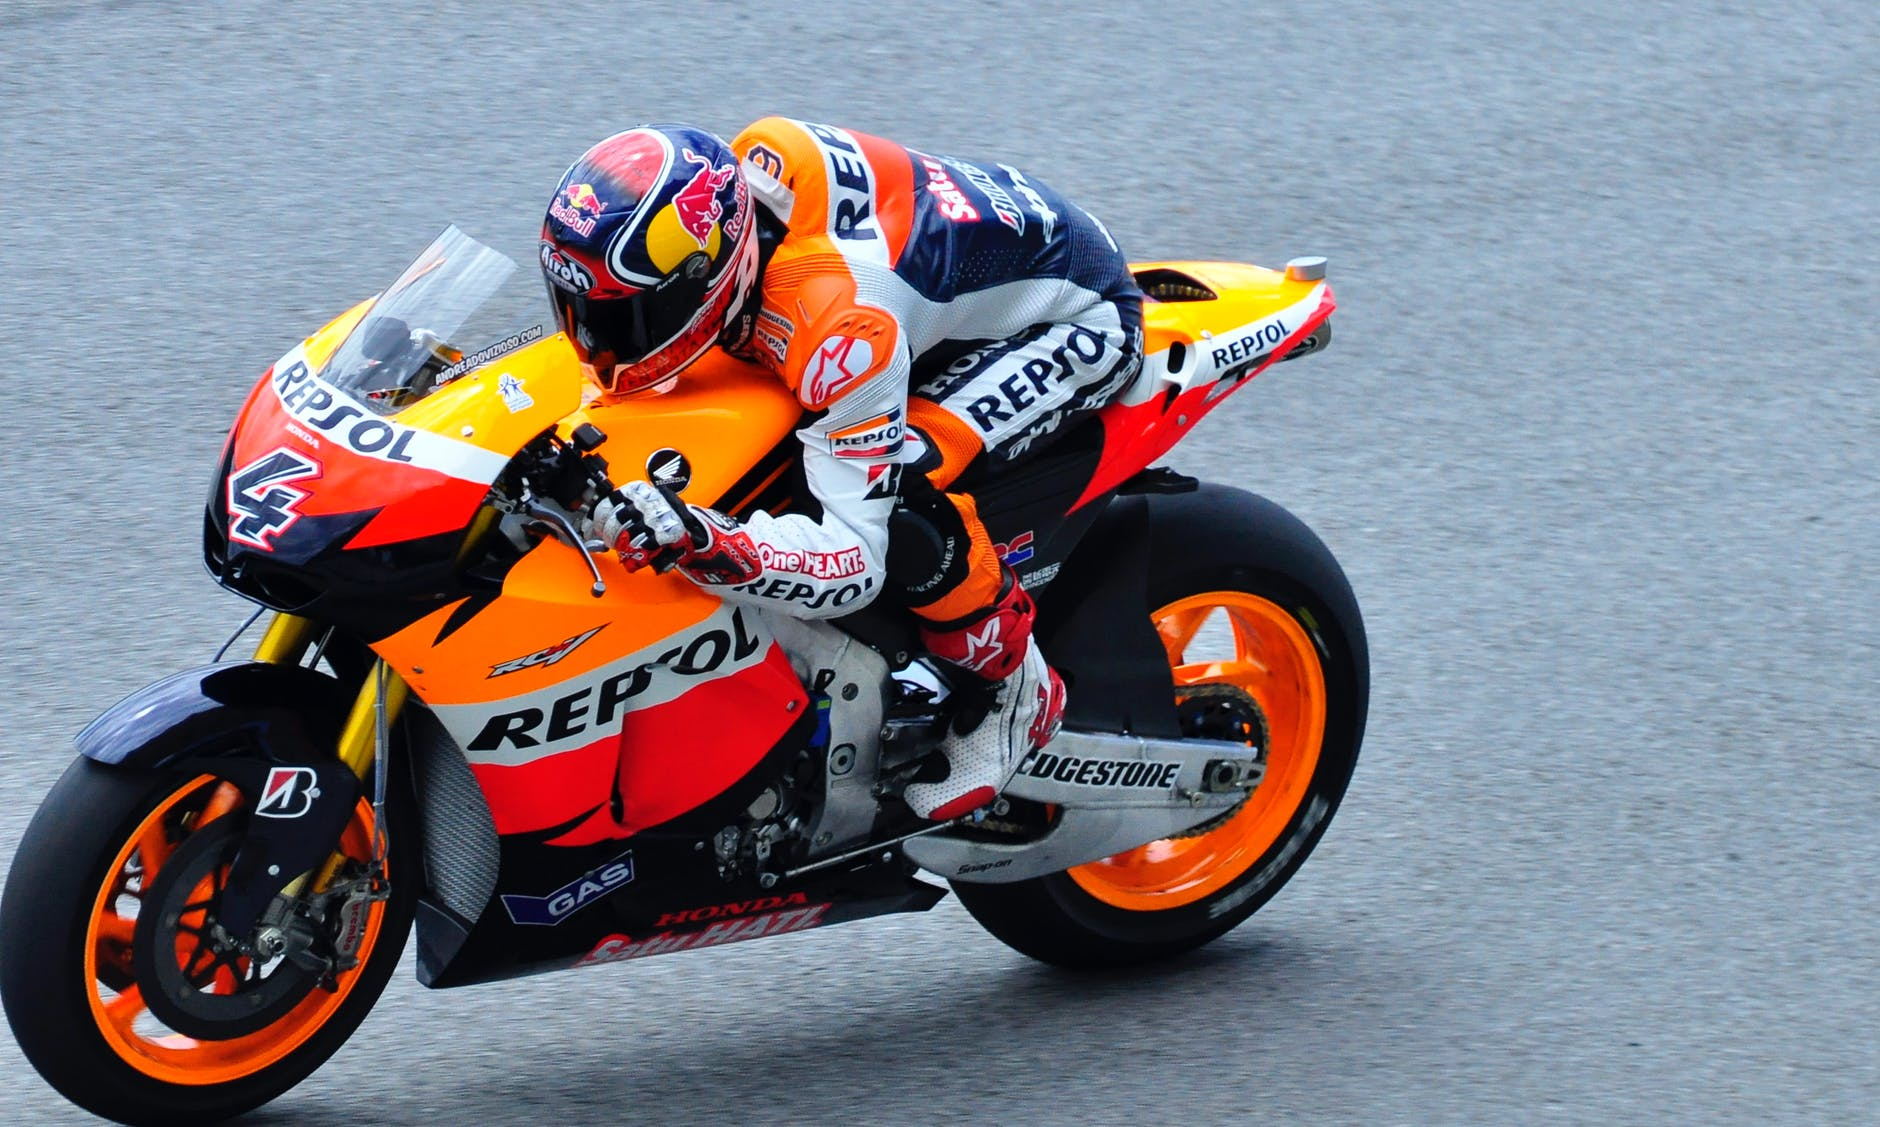 repsol motogp - The 7 Wagering Alternatives When Betting on MotoGP Sports and What Sites to Bet On